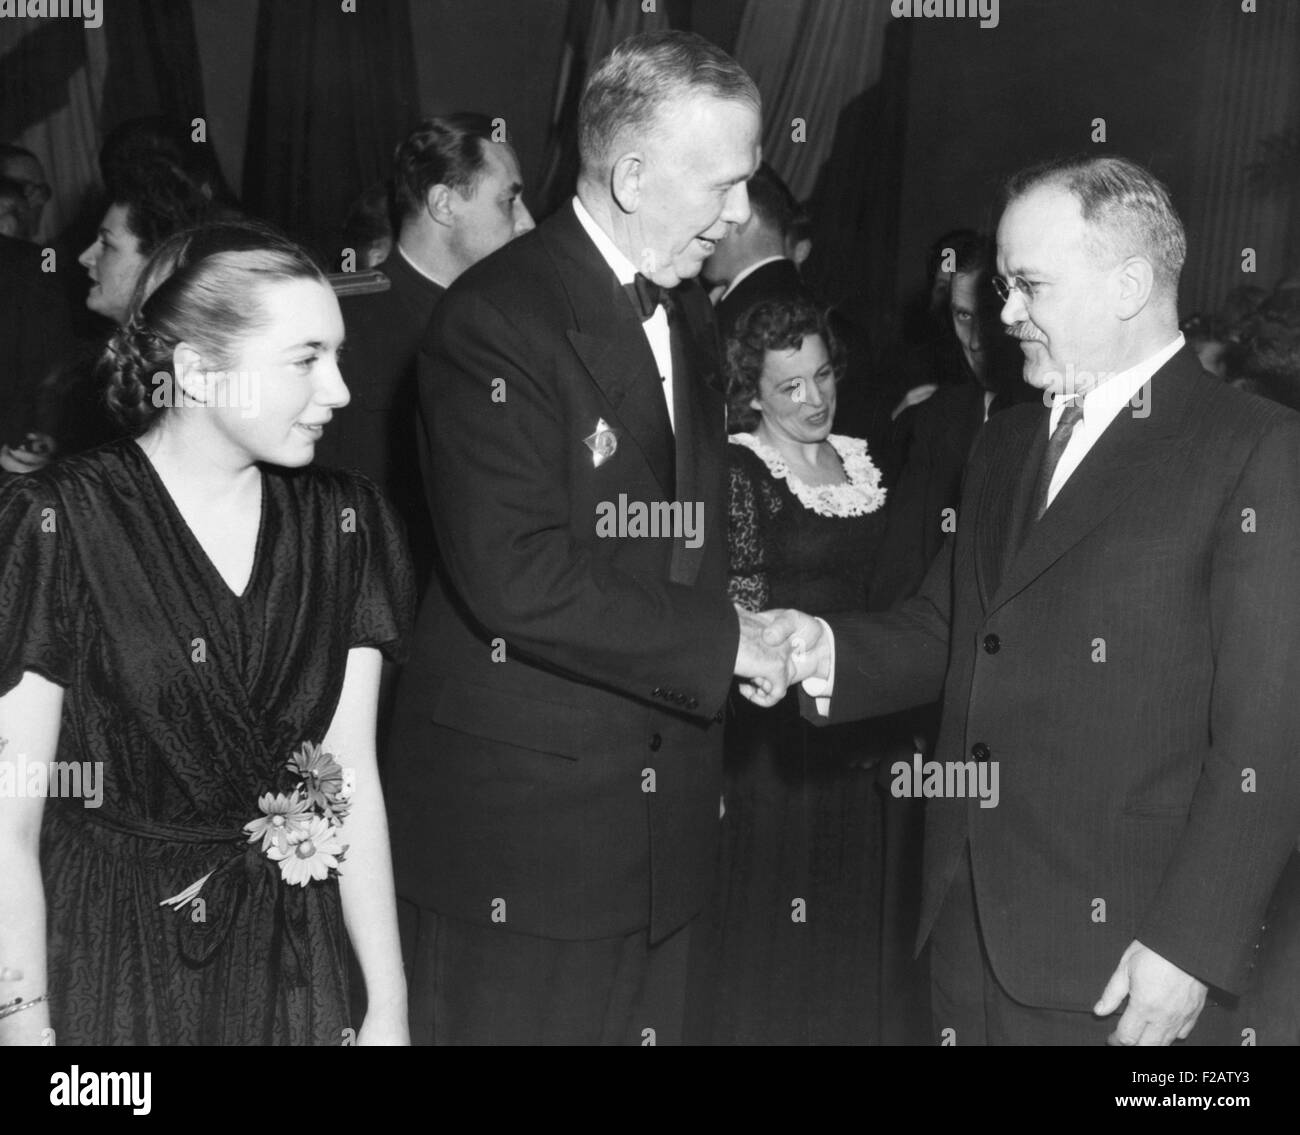 U.S. Sec. of State George Marshall (center), greets Soviet Foreign Minister Molotov. They were attending the Big - Stock Image